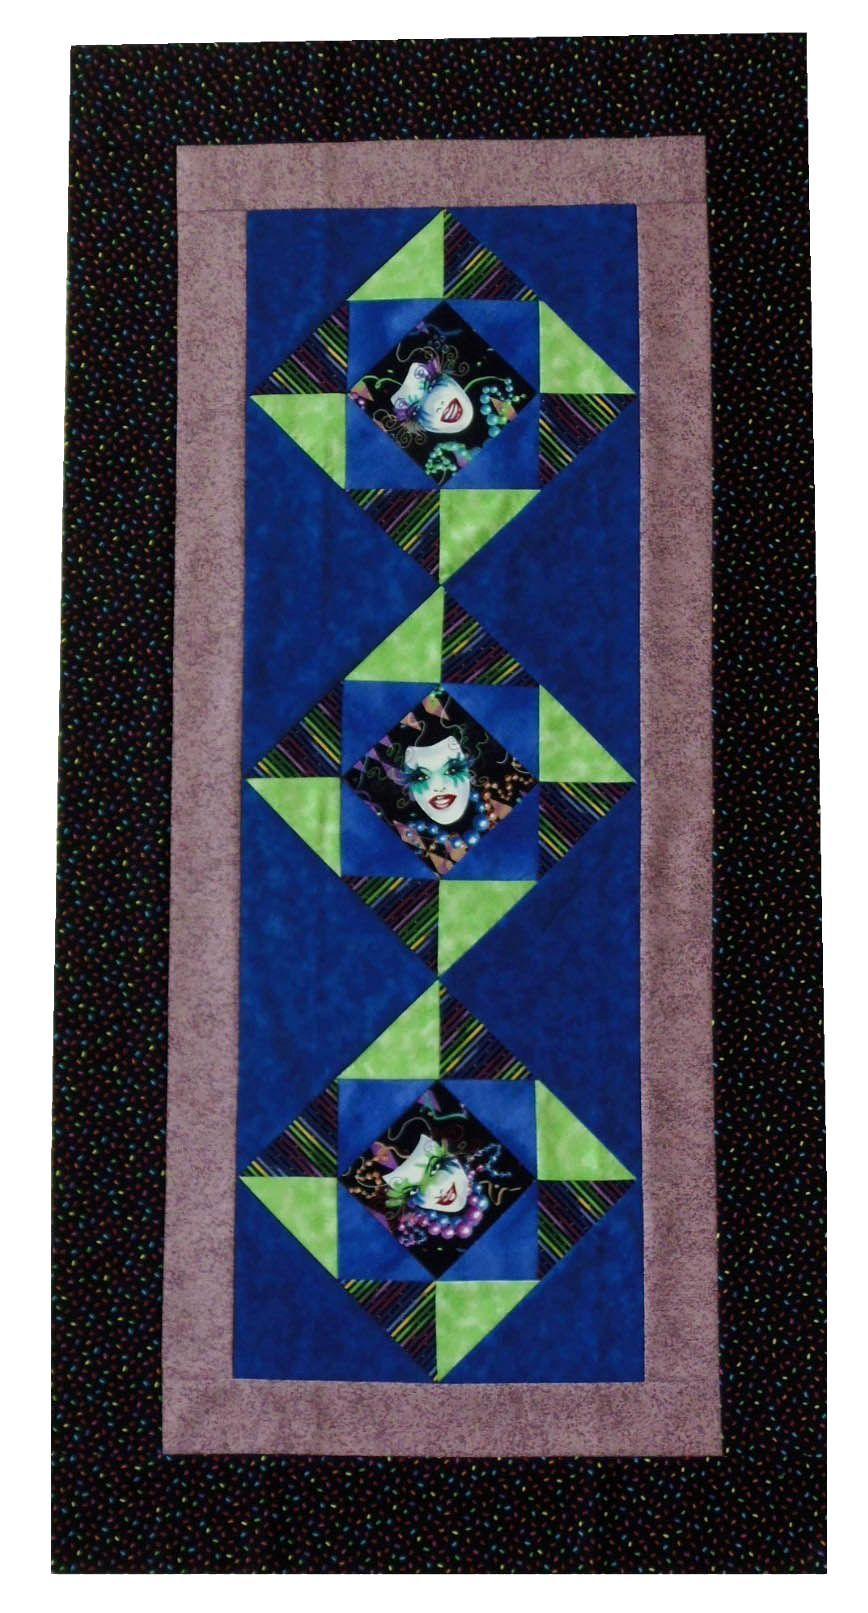 Mardi Gras Mask Runner Quilt Top 21x44